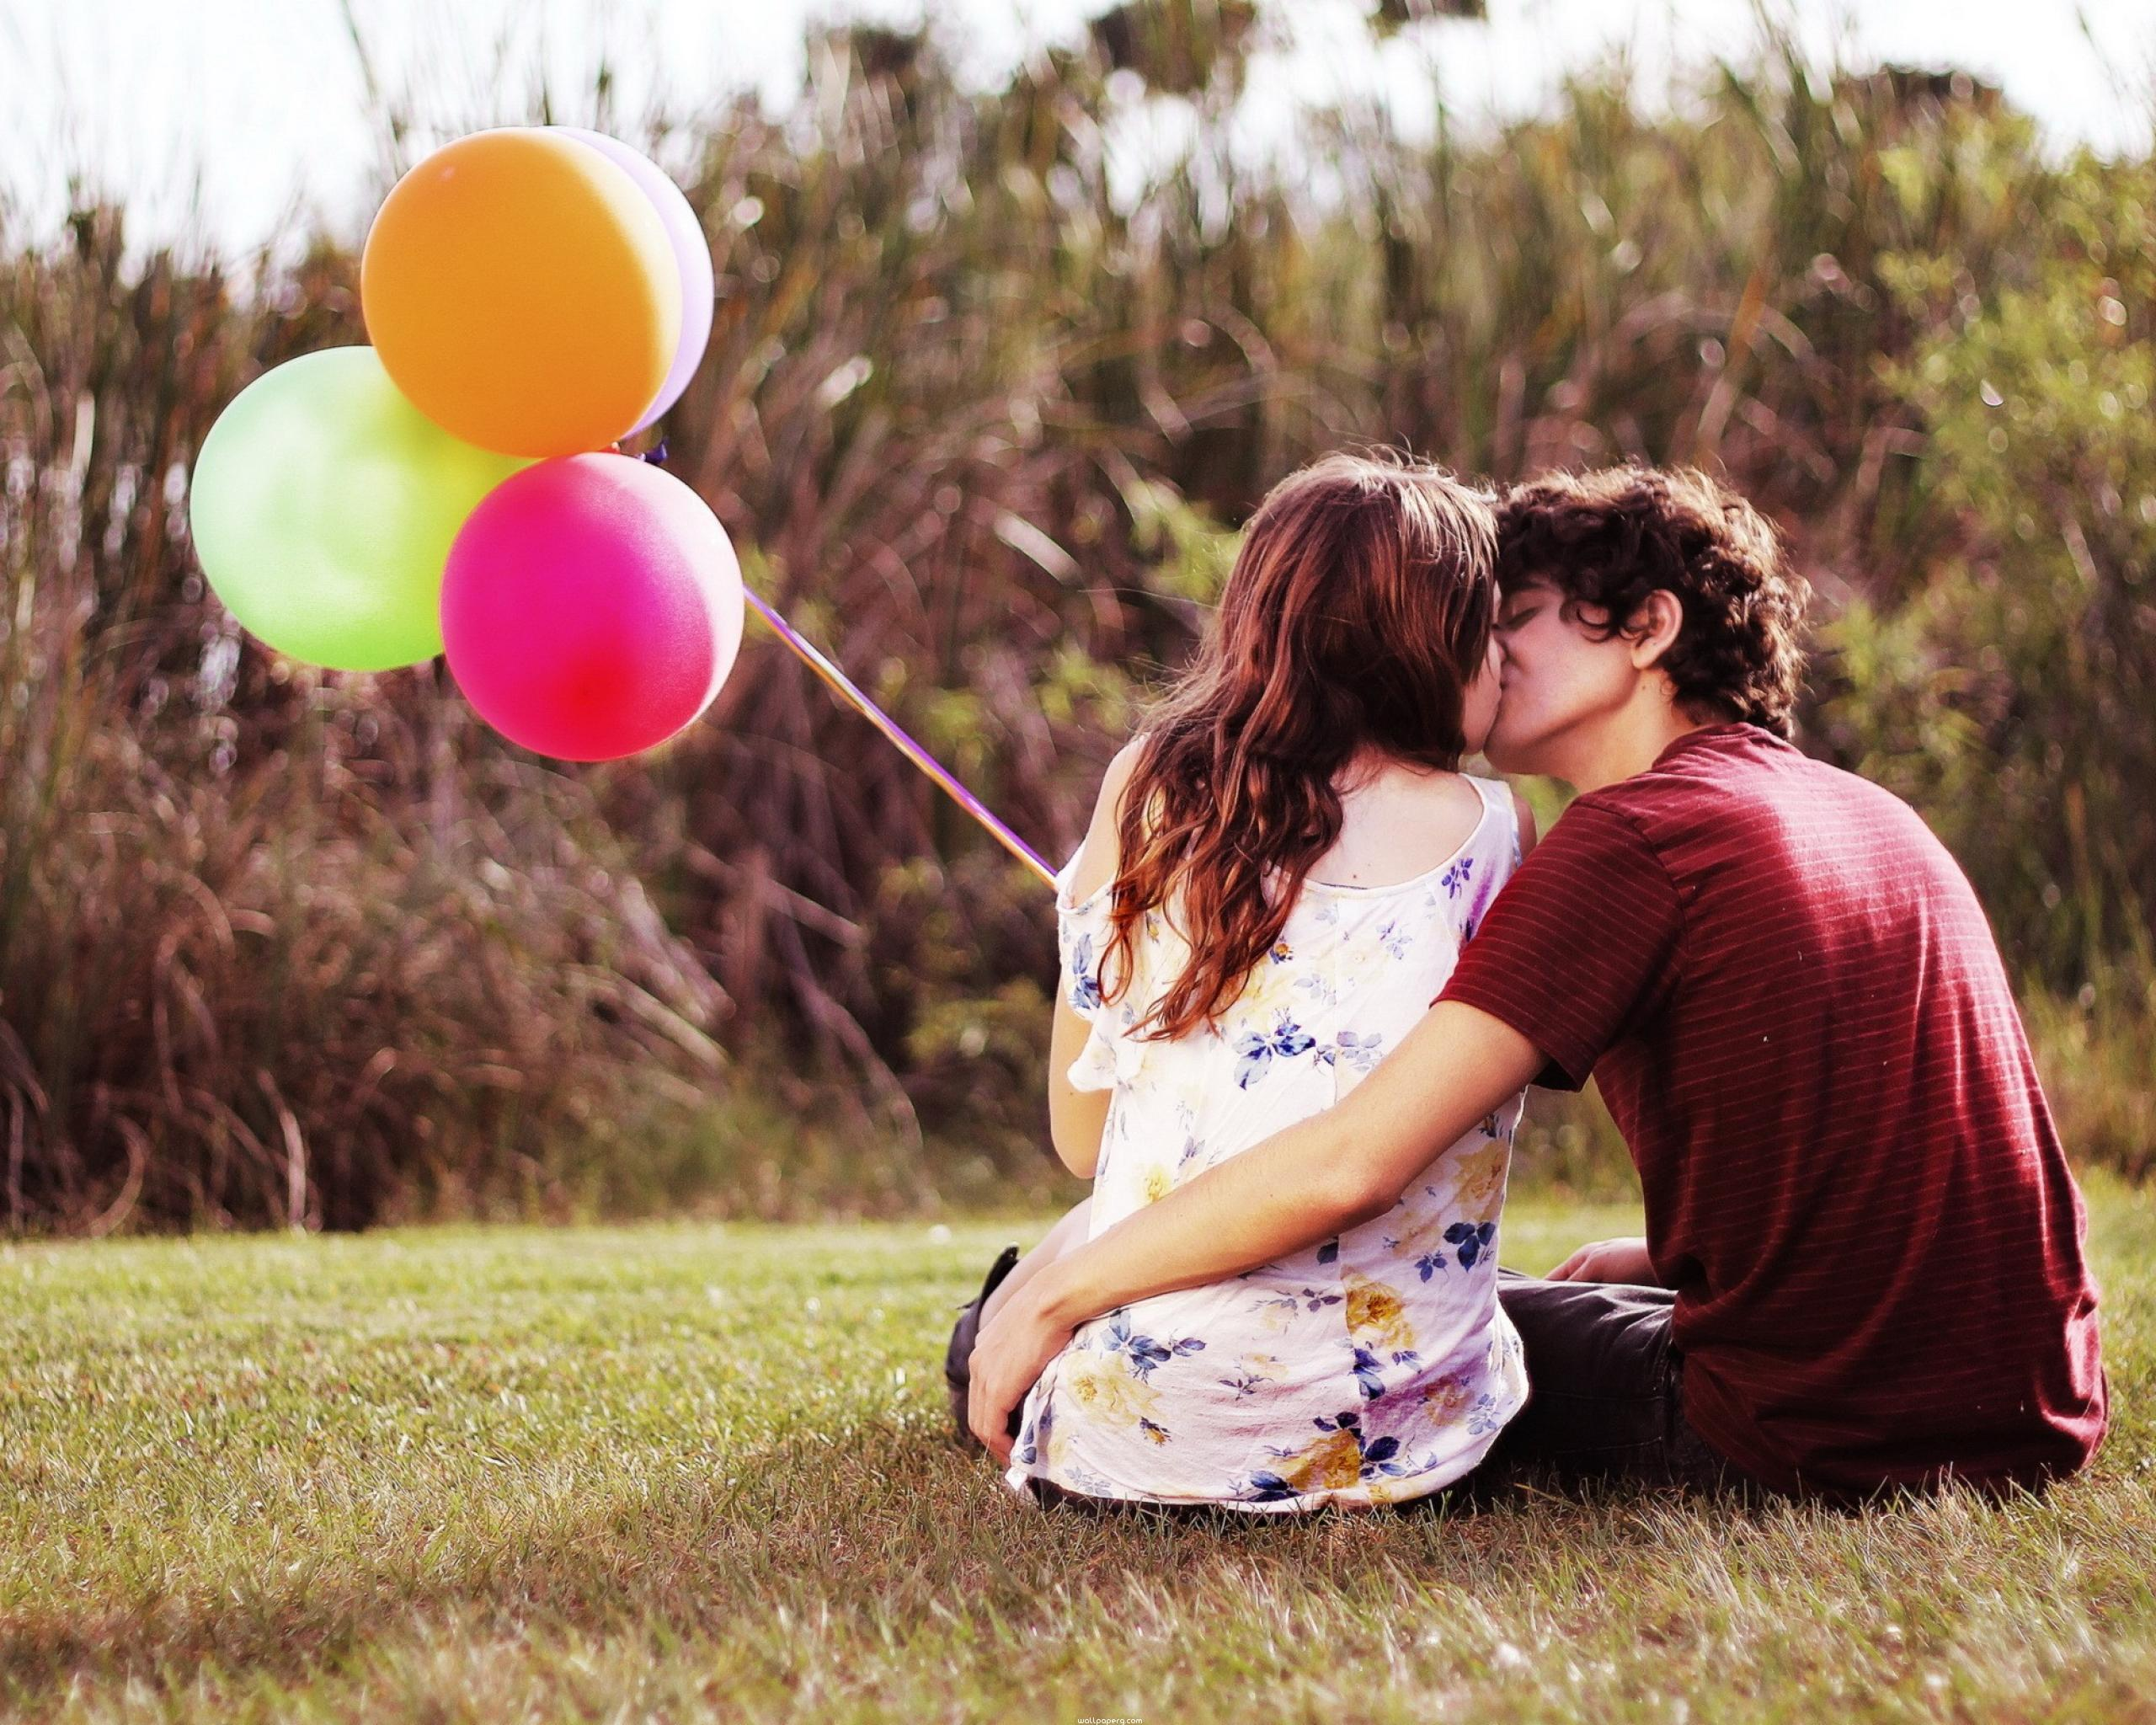 Download Sweet love couple kissing alone - Romantic wallpapers for your mobile cell phone